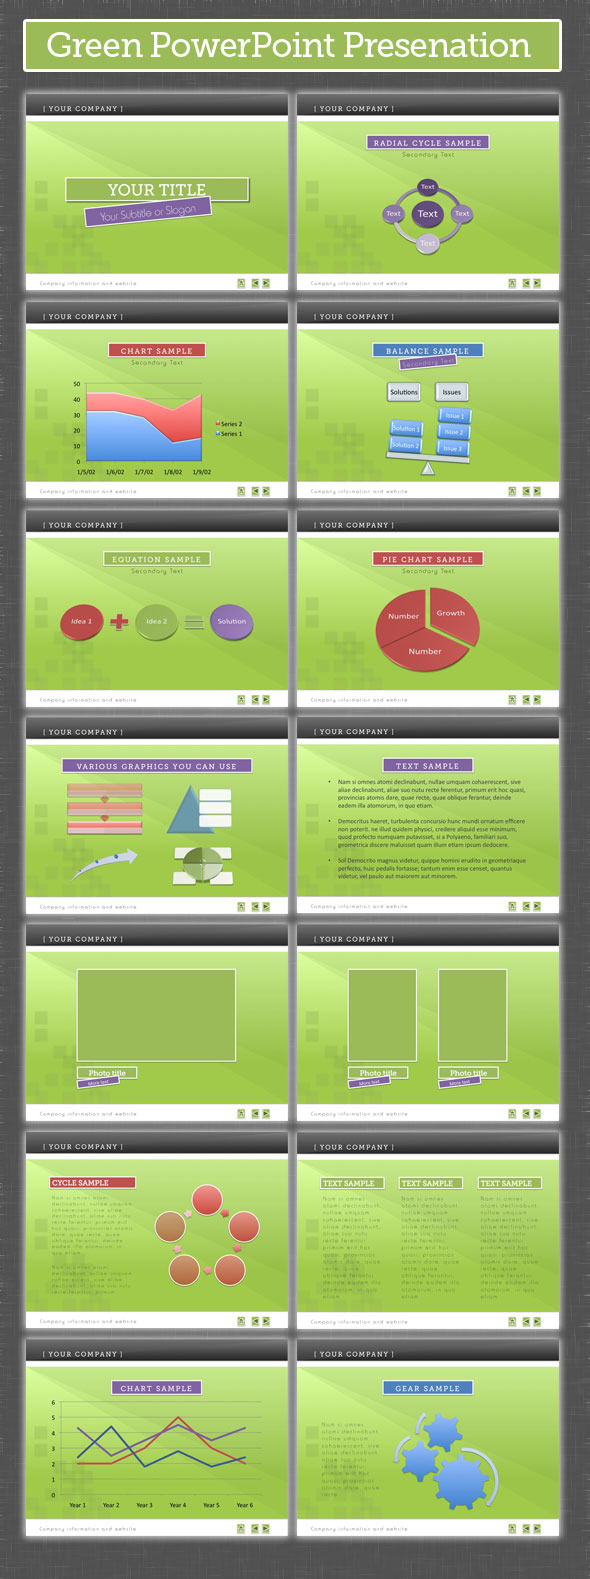 Green PowerPoint Presentation - PowerPoint Templates Presentation Templates